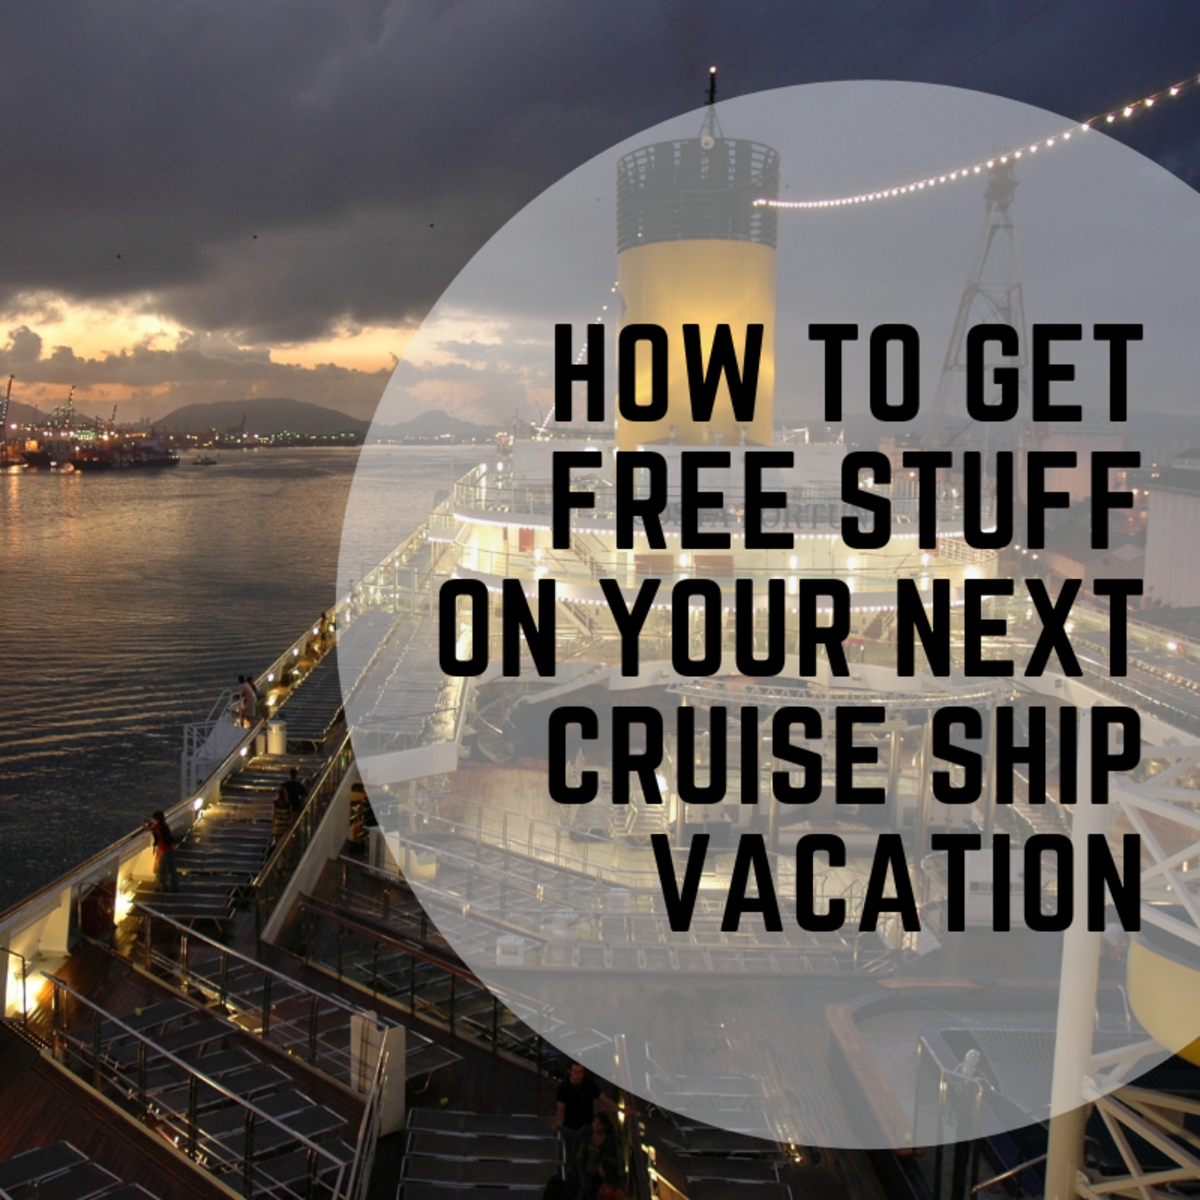 the-best-ways-to-get-free-stuff-on-your-next-cruise-ship-vacation